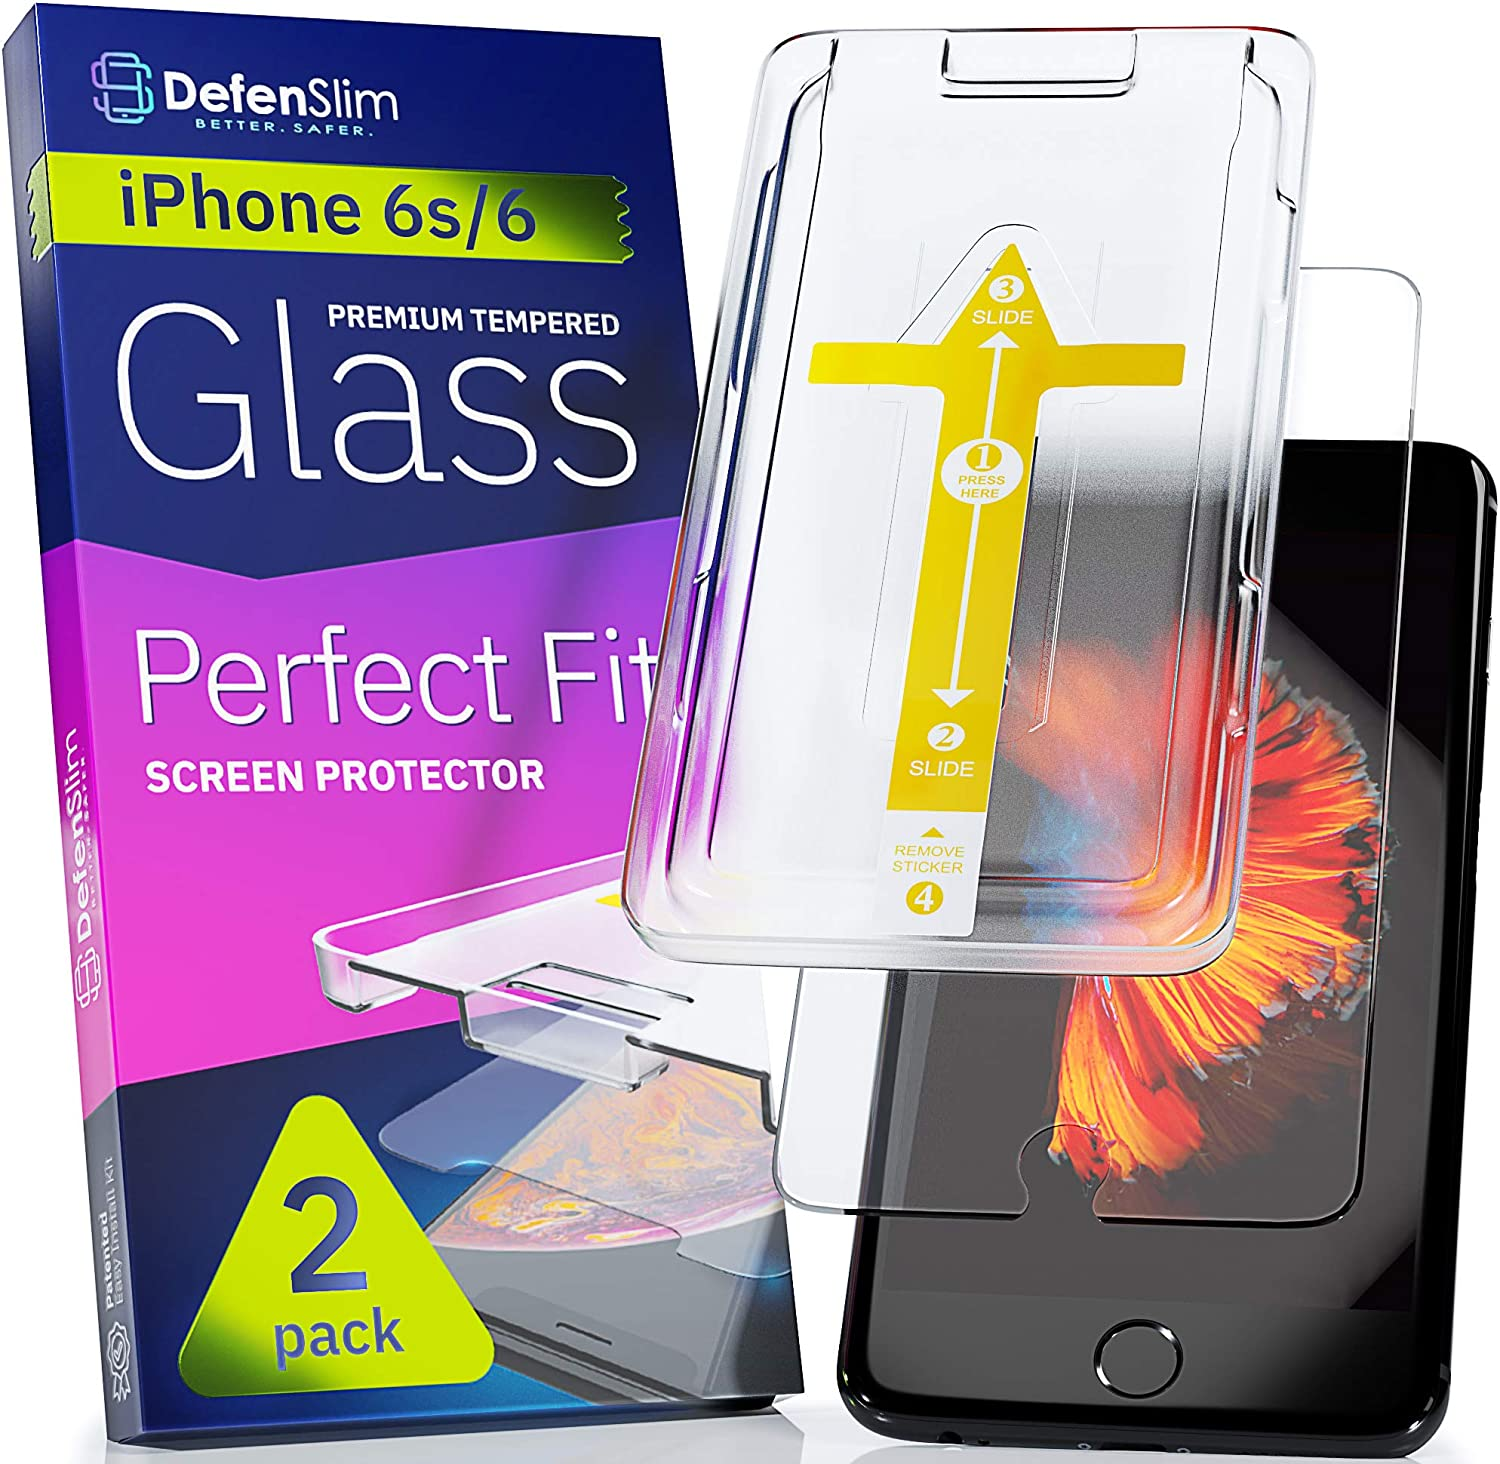 "Defenslim iPhone 6s Screen Protector [2-Pack] with Easy Auto-Align Install Kit - Tempered Glass for iPhone 6s, 6 (4,7"") - New Glass with Your Next Phone"